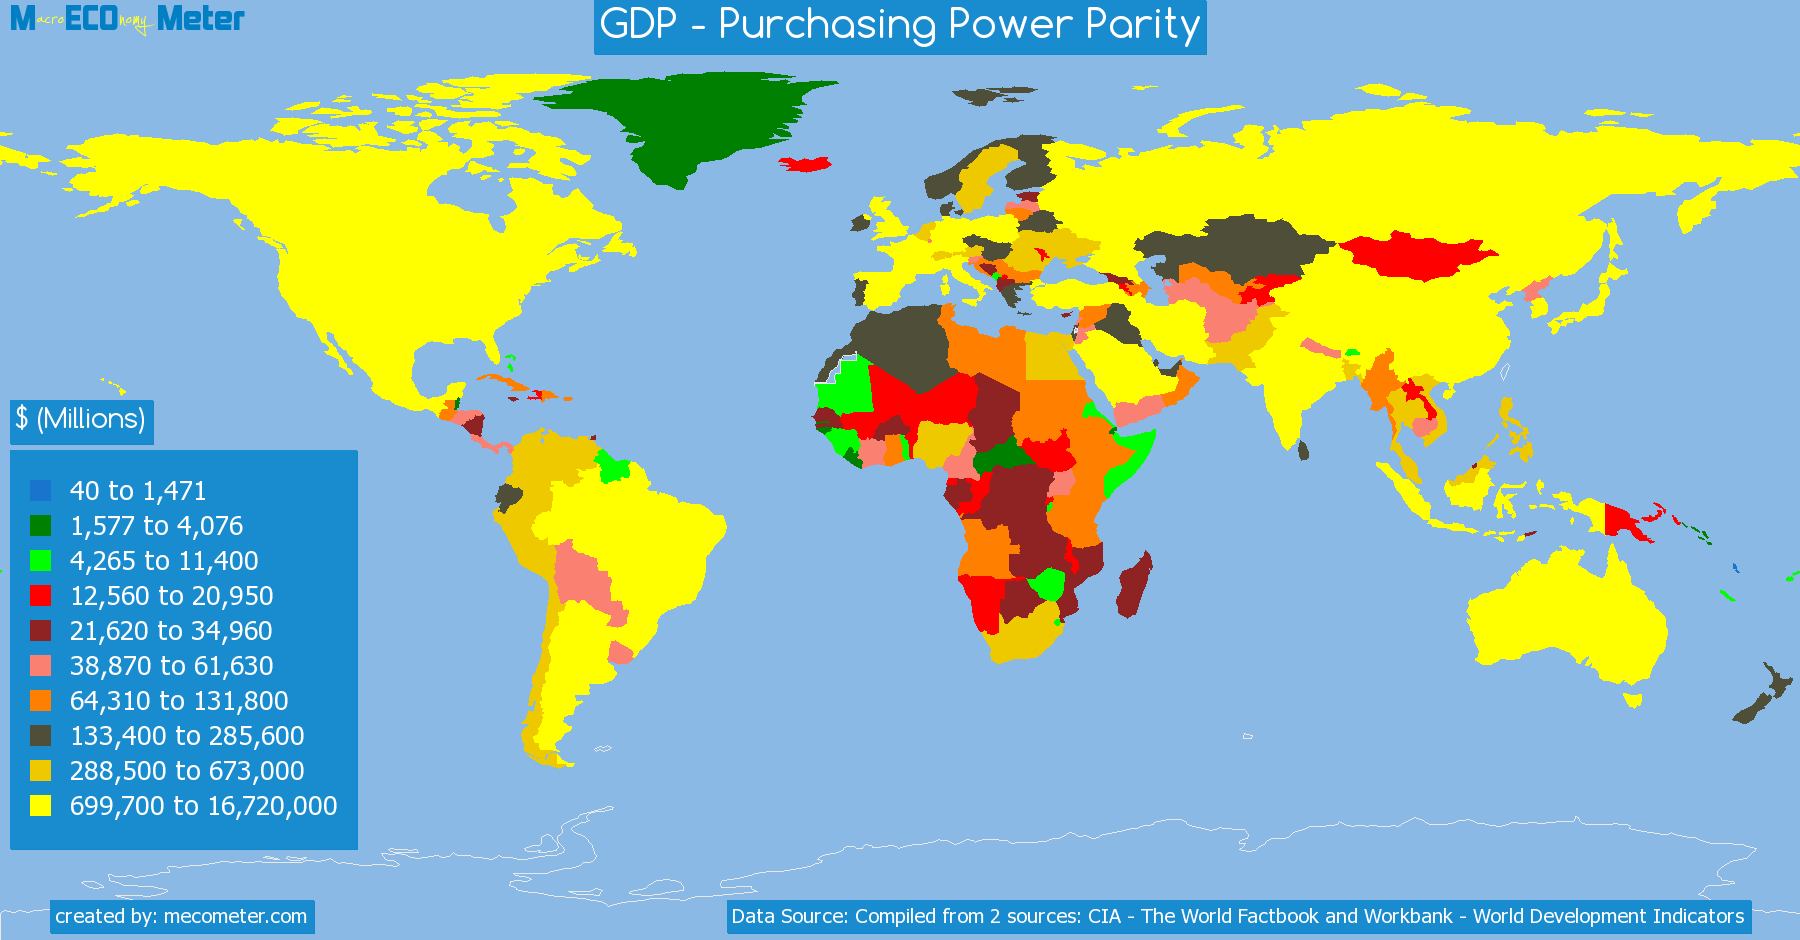 list of countries by GDP - Purchasing Power Parity